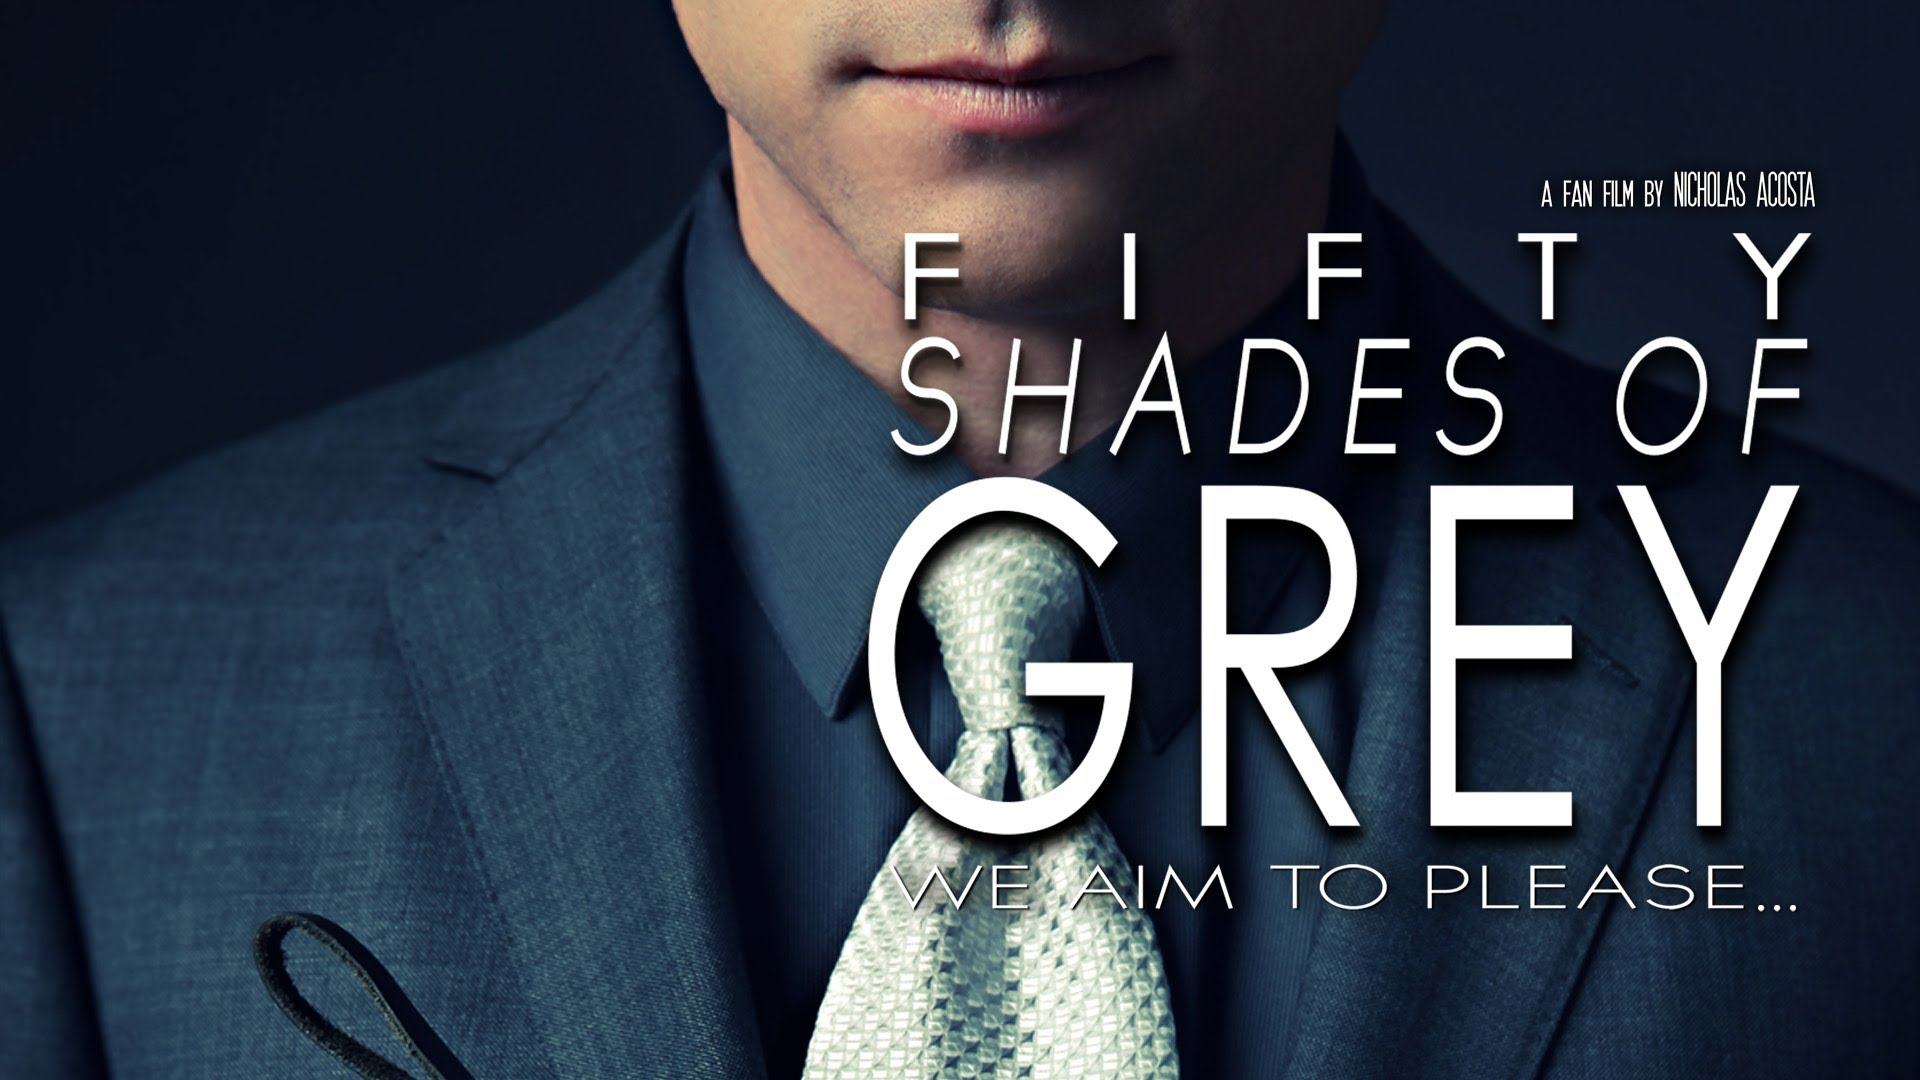 Fifty shades of grey hd wallpaper background image - Fifty shades of grey movie wallpaper ...